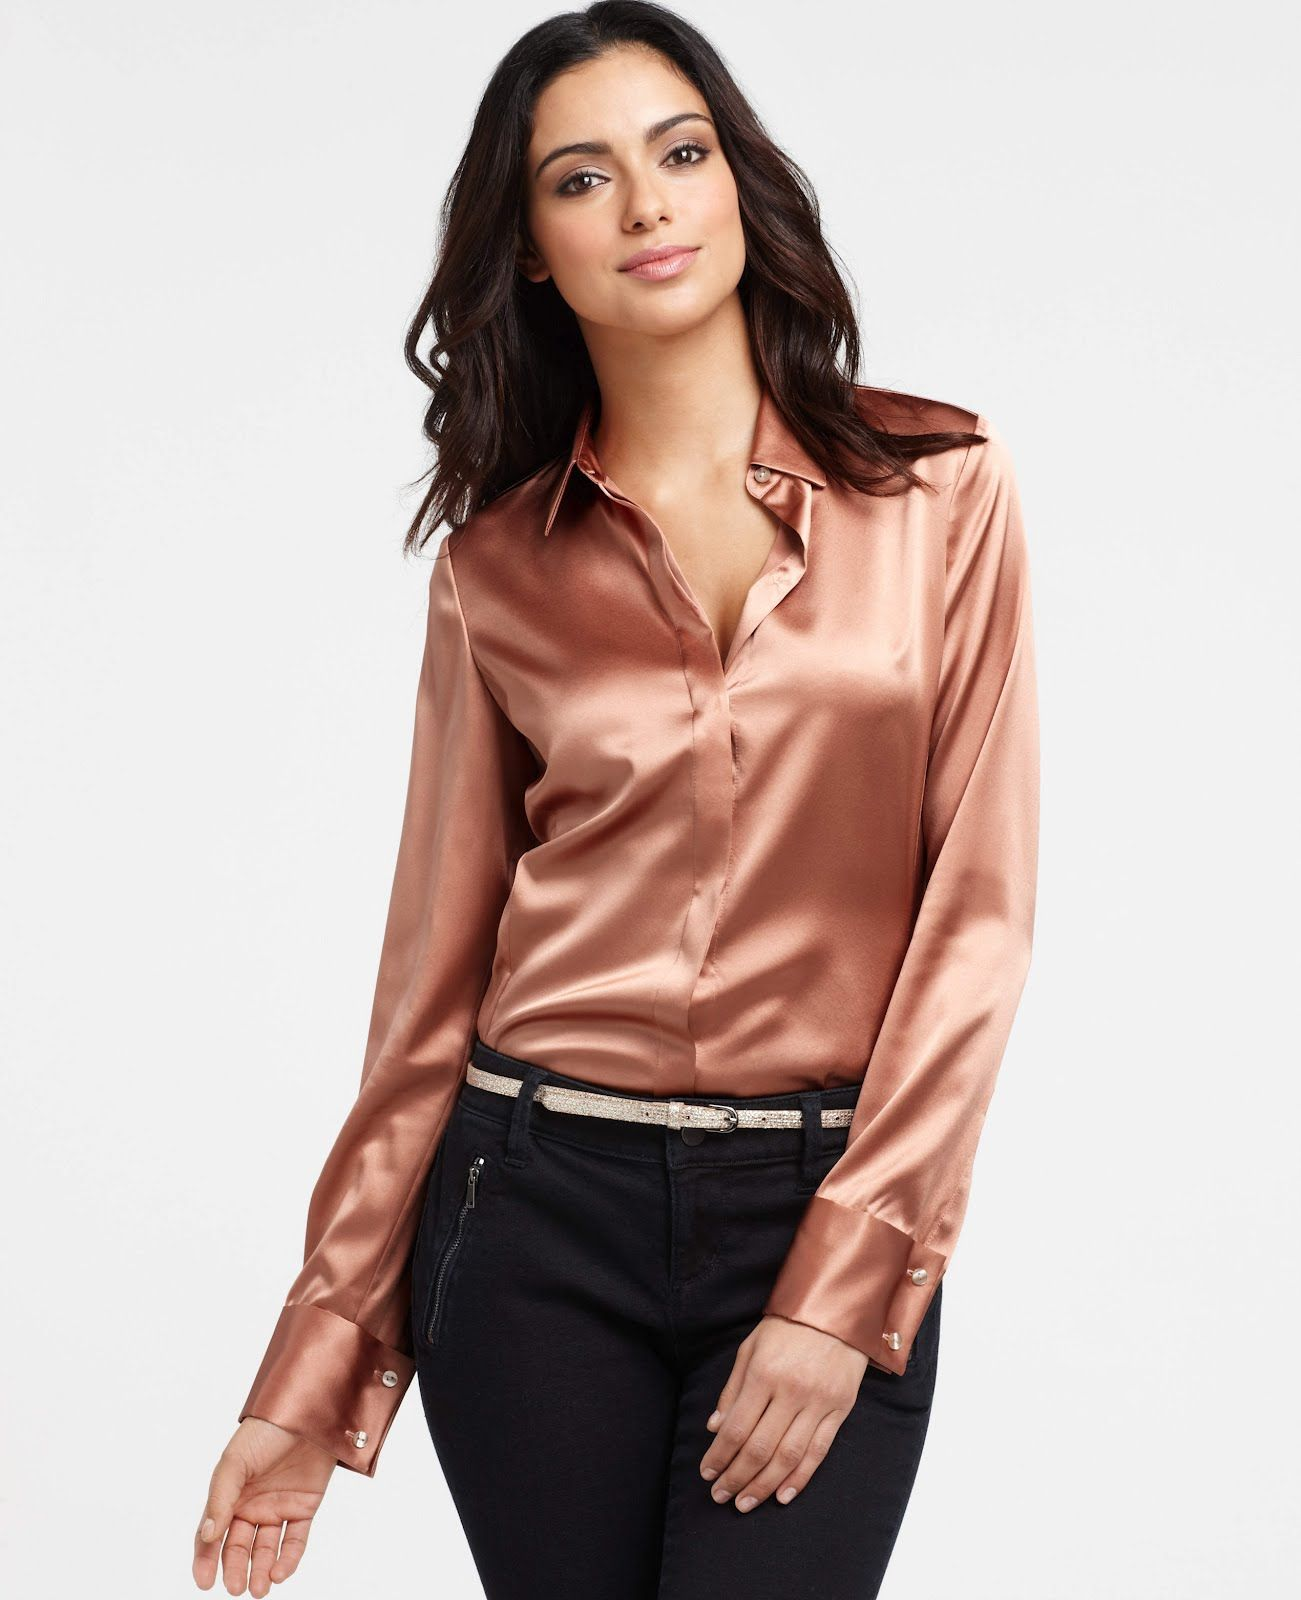 Shop long sleeves satin blouse at Neiman Marcus, where you will find free shipping on the latest in fashion from top designers. Skip To Main Content. FALL SHOP THE COLLECTIONS. Women's Clothing. Contemporary. Shoes. Handbags. Jewelry & Accessories. Beauty. Men. Kids. Home. Gifts. Sale.